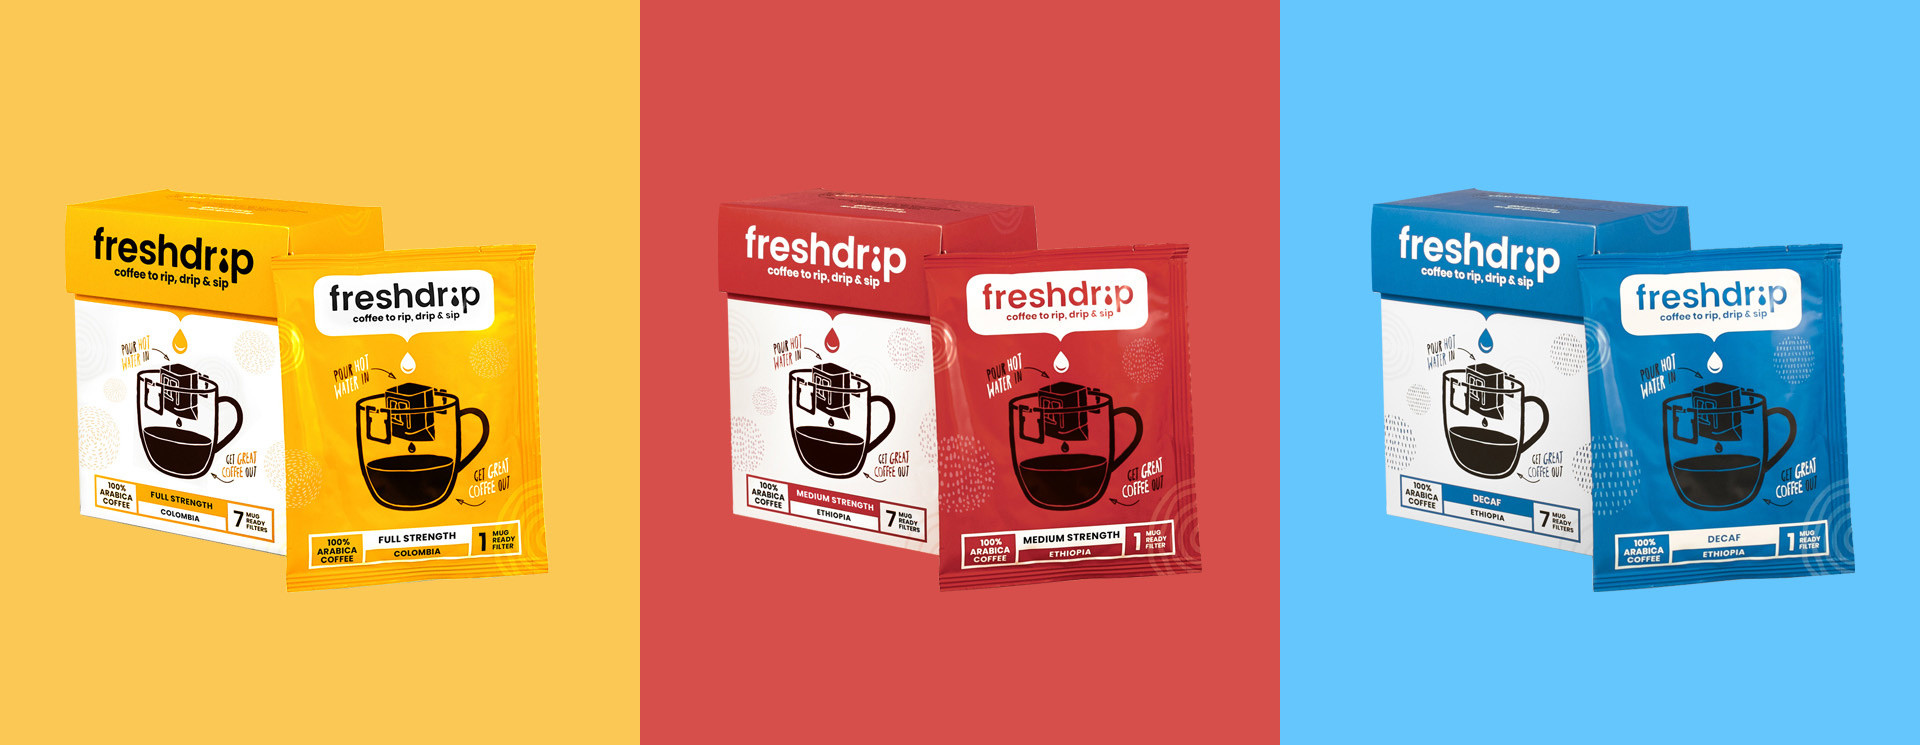 Freshdrip Small Box With 7 Coffee Filters